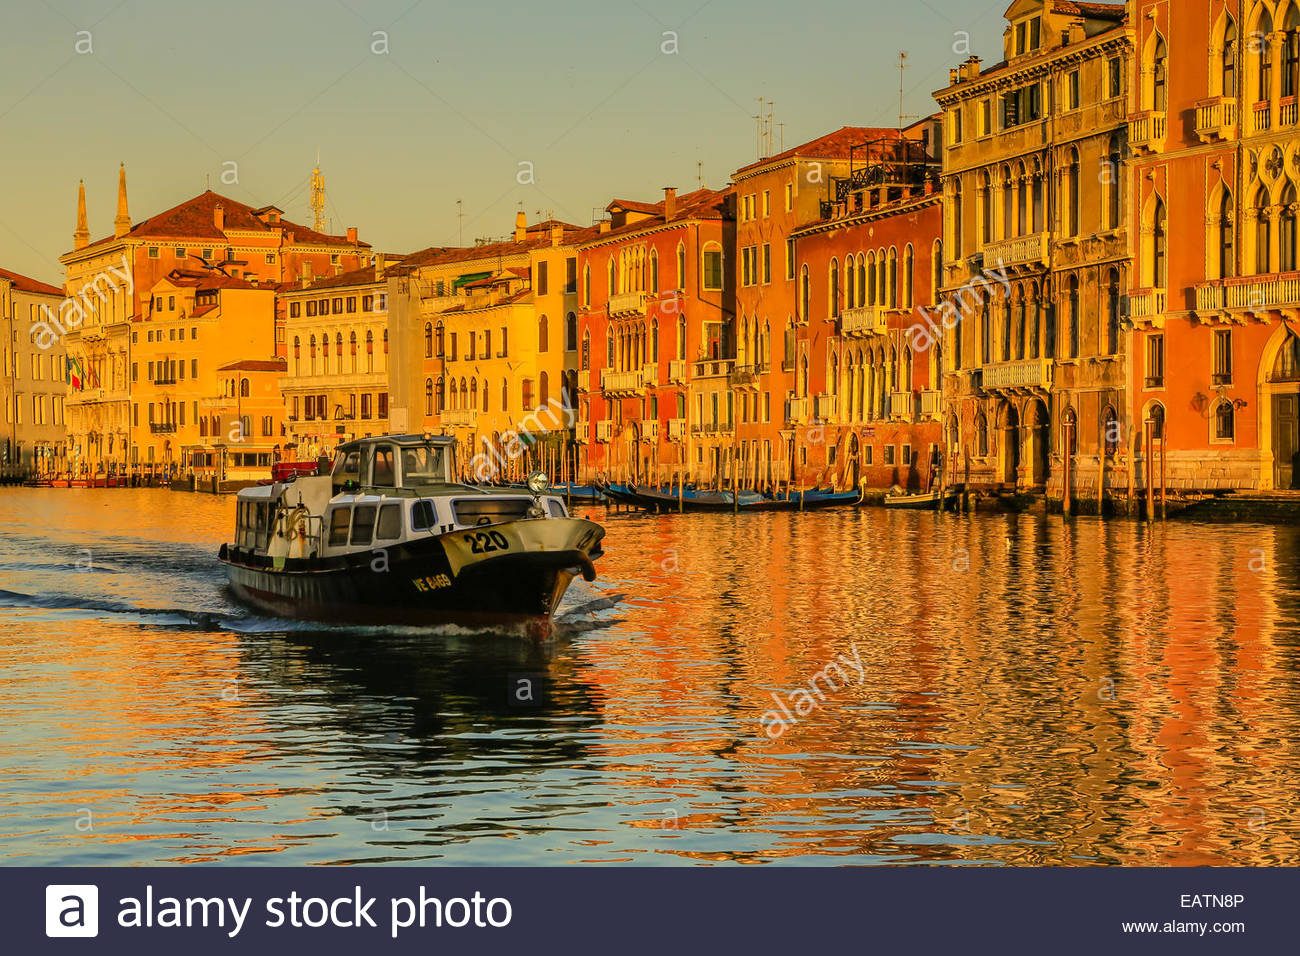 A water taxi plies the Grand Canal in Venice - Stock Image